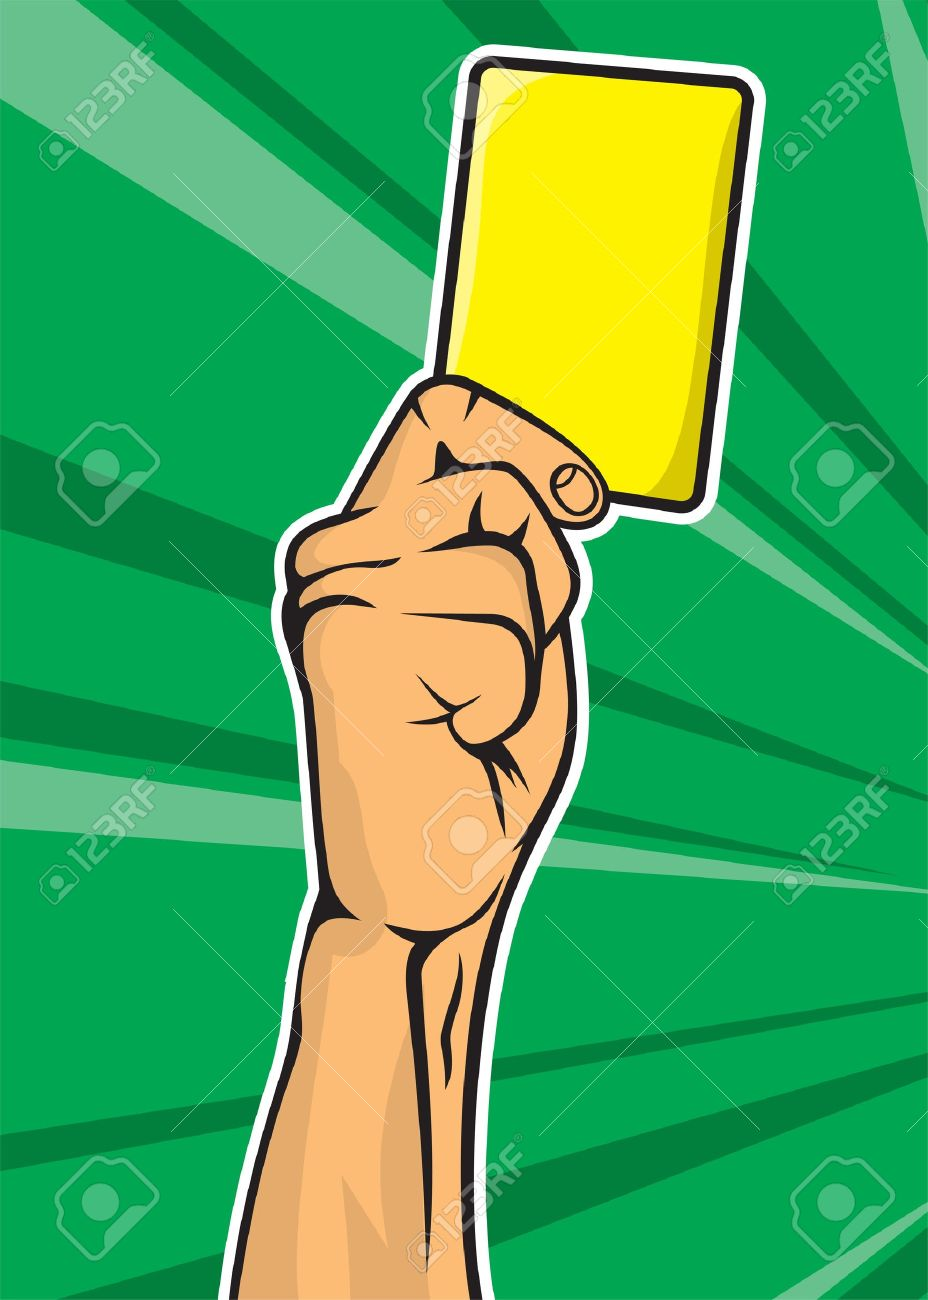 Soccer referee hand with yellow card Stock Vector - 18067020